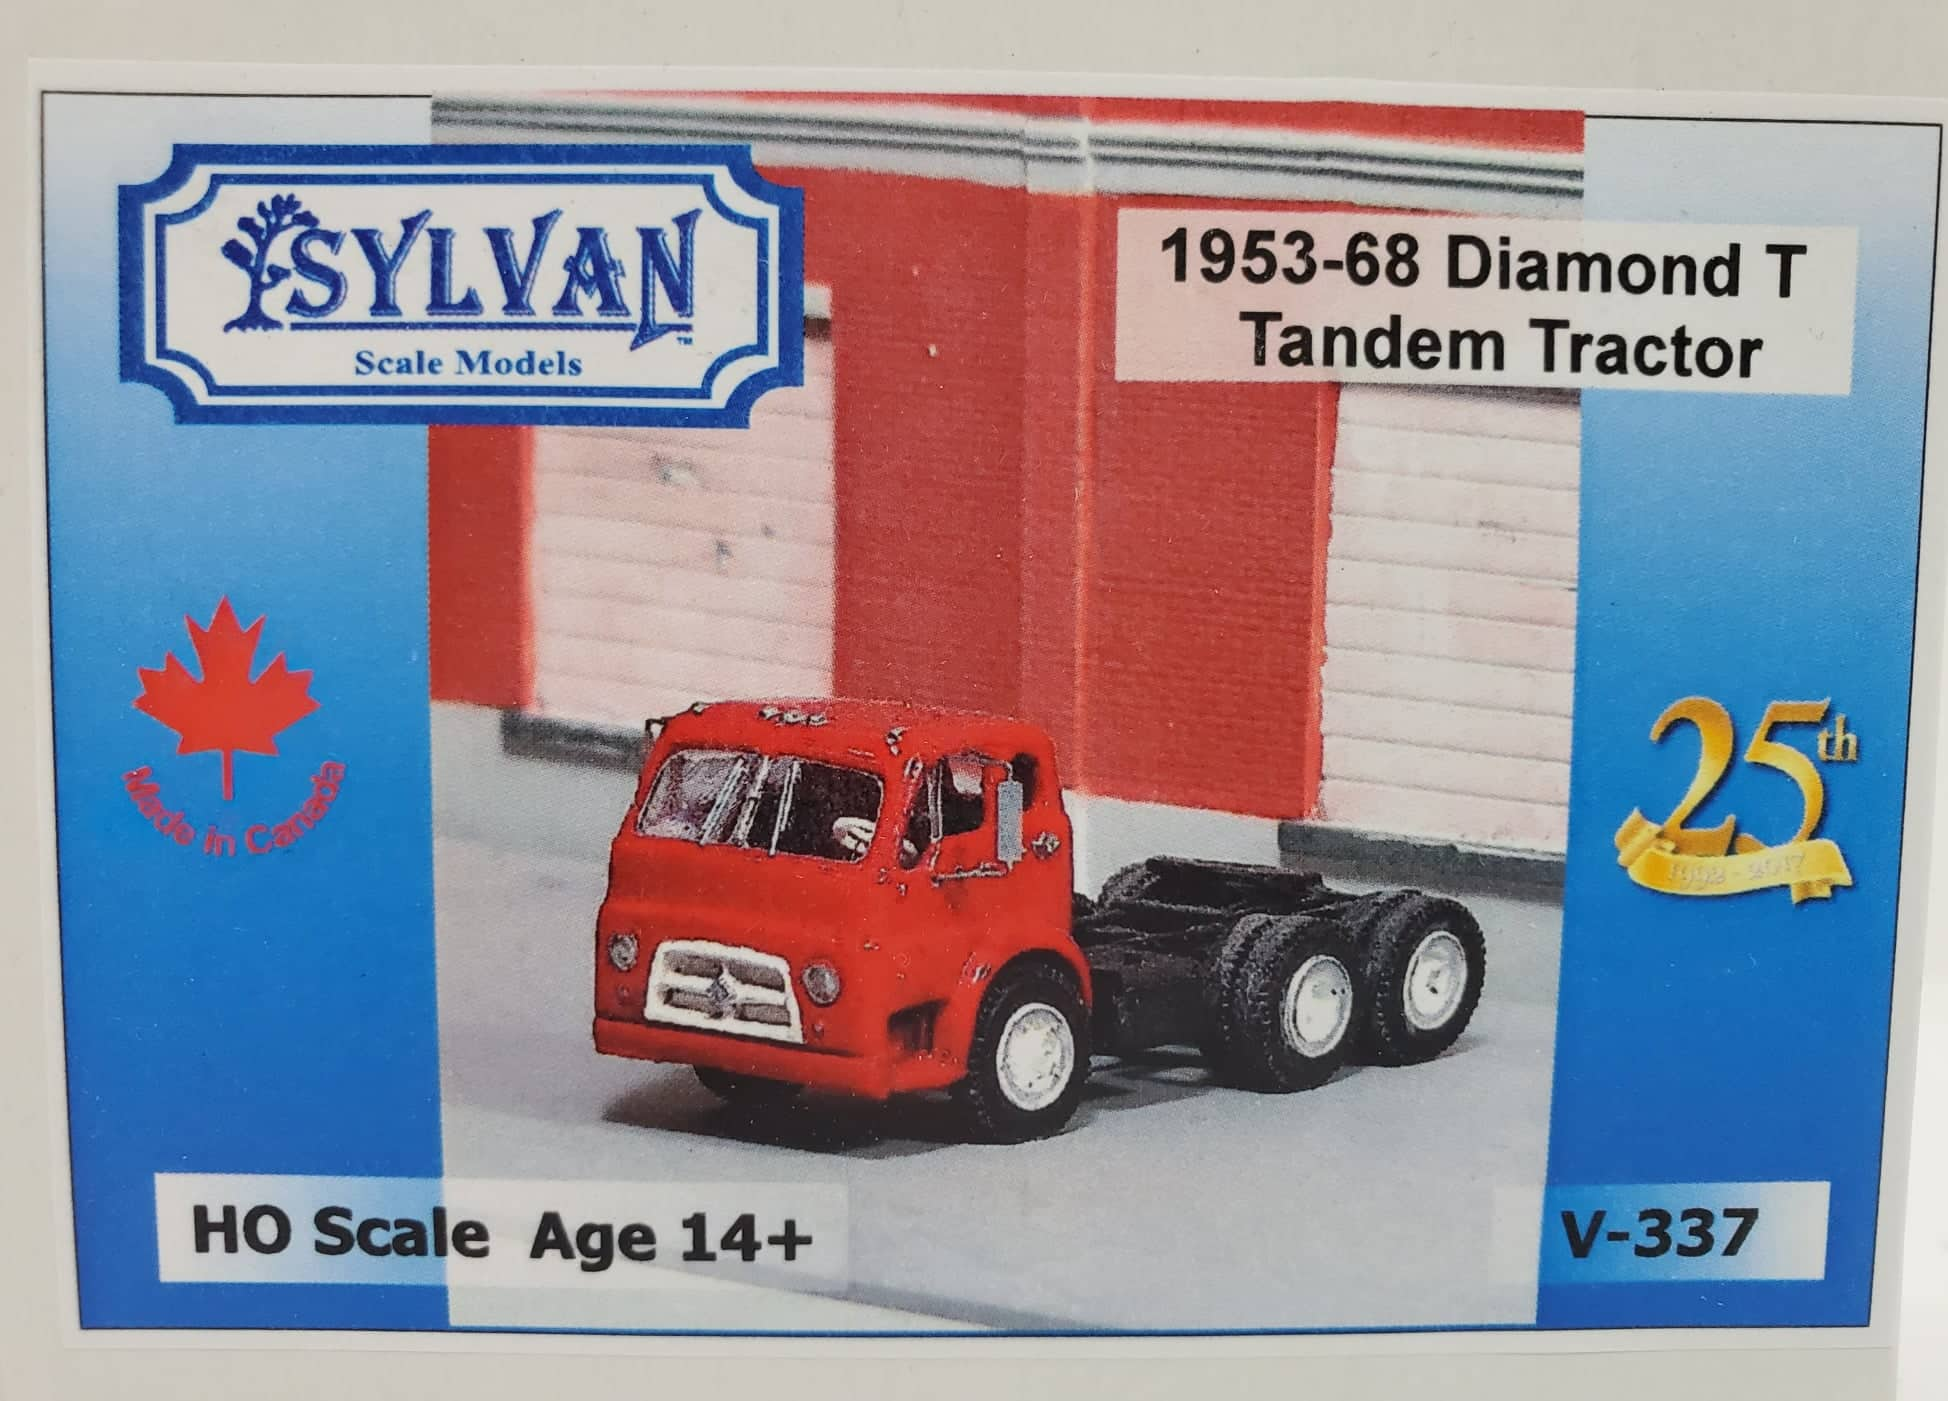 Sylvan Scale Models 337 HO Scale - 1953/68 Diamond T734 Tandem Tractor - Unpainted and Resin Cast Kit